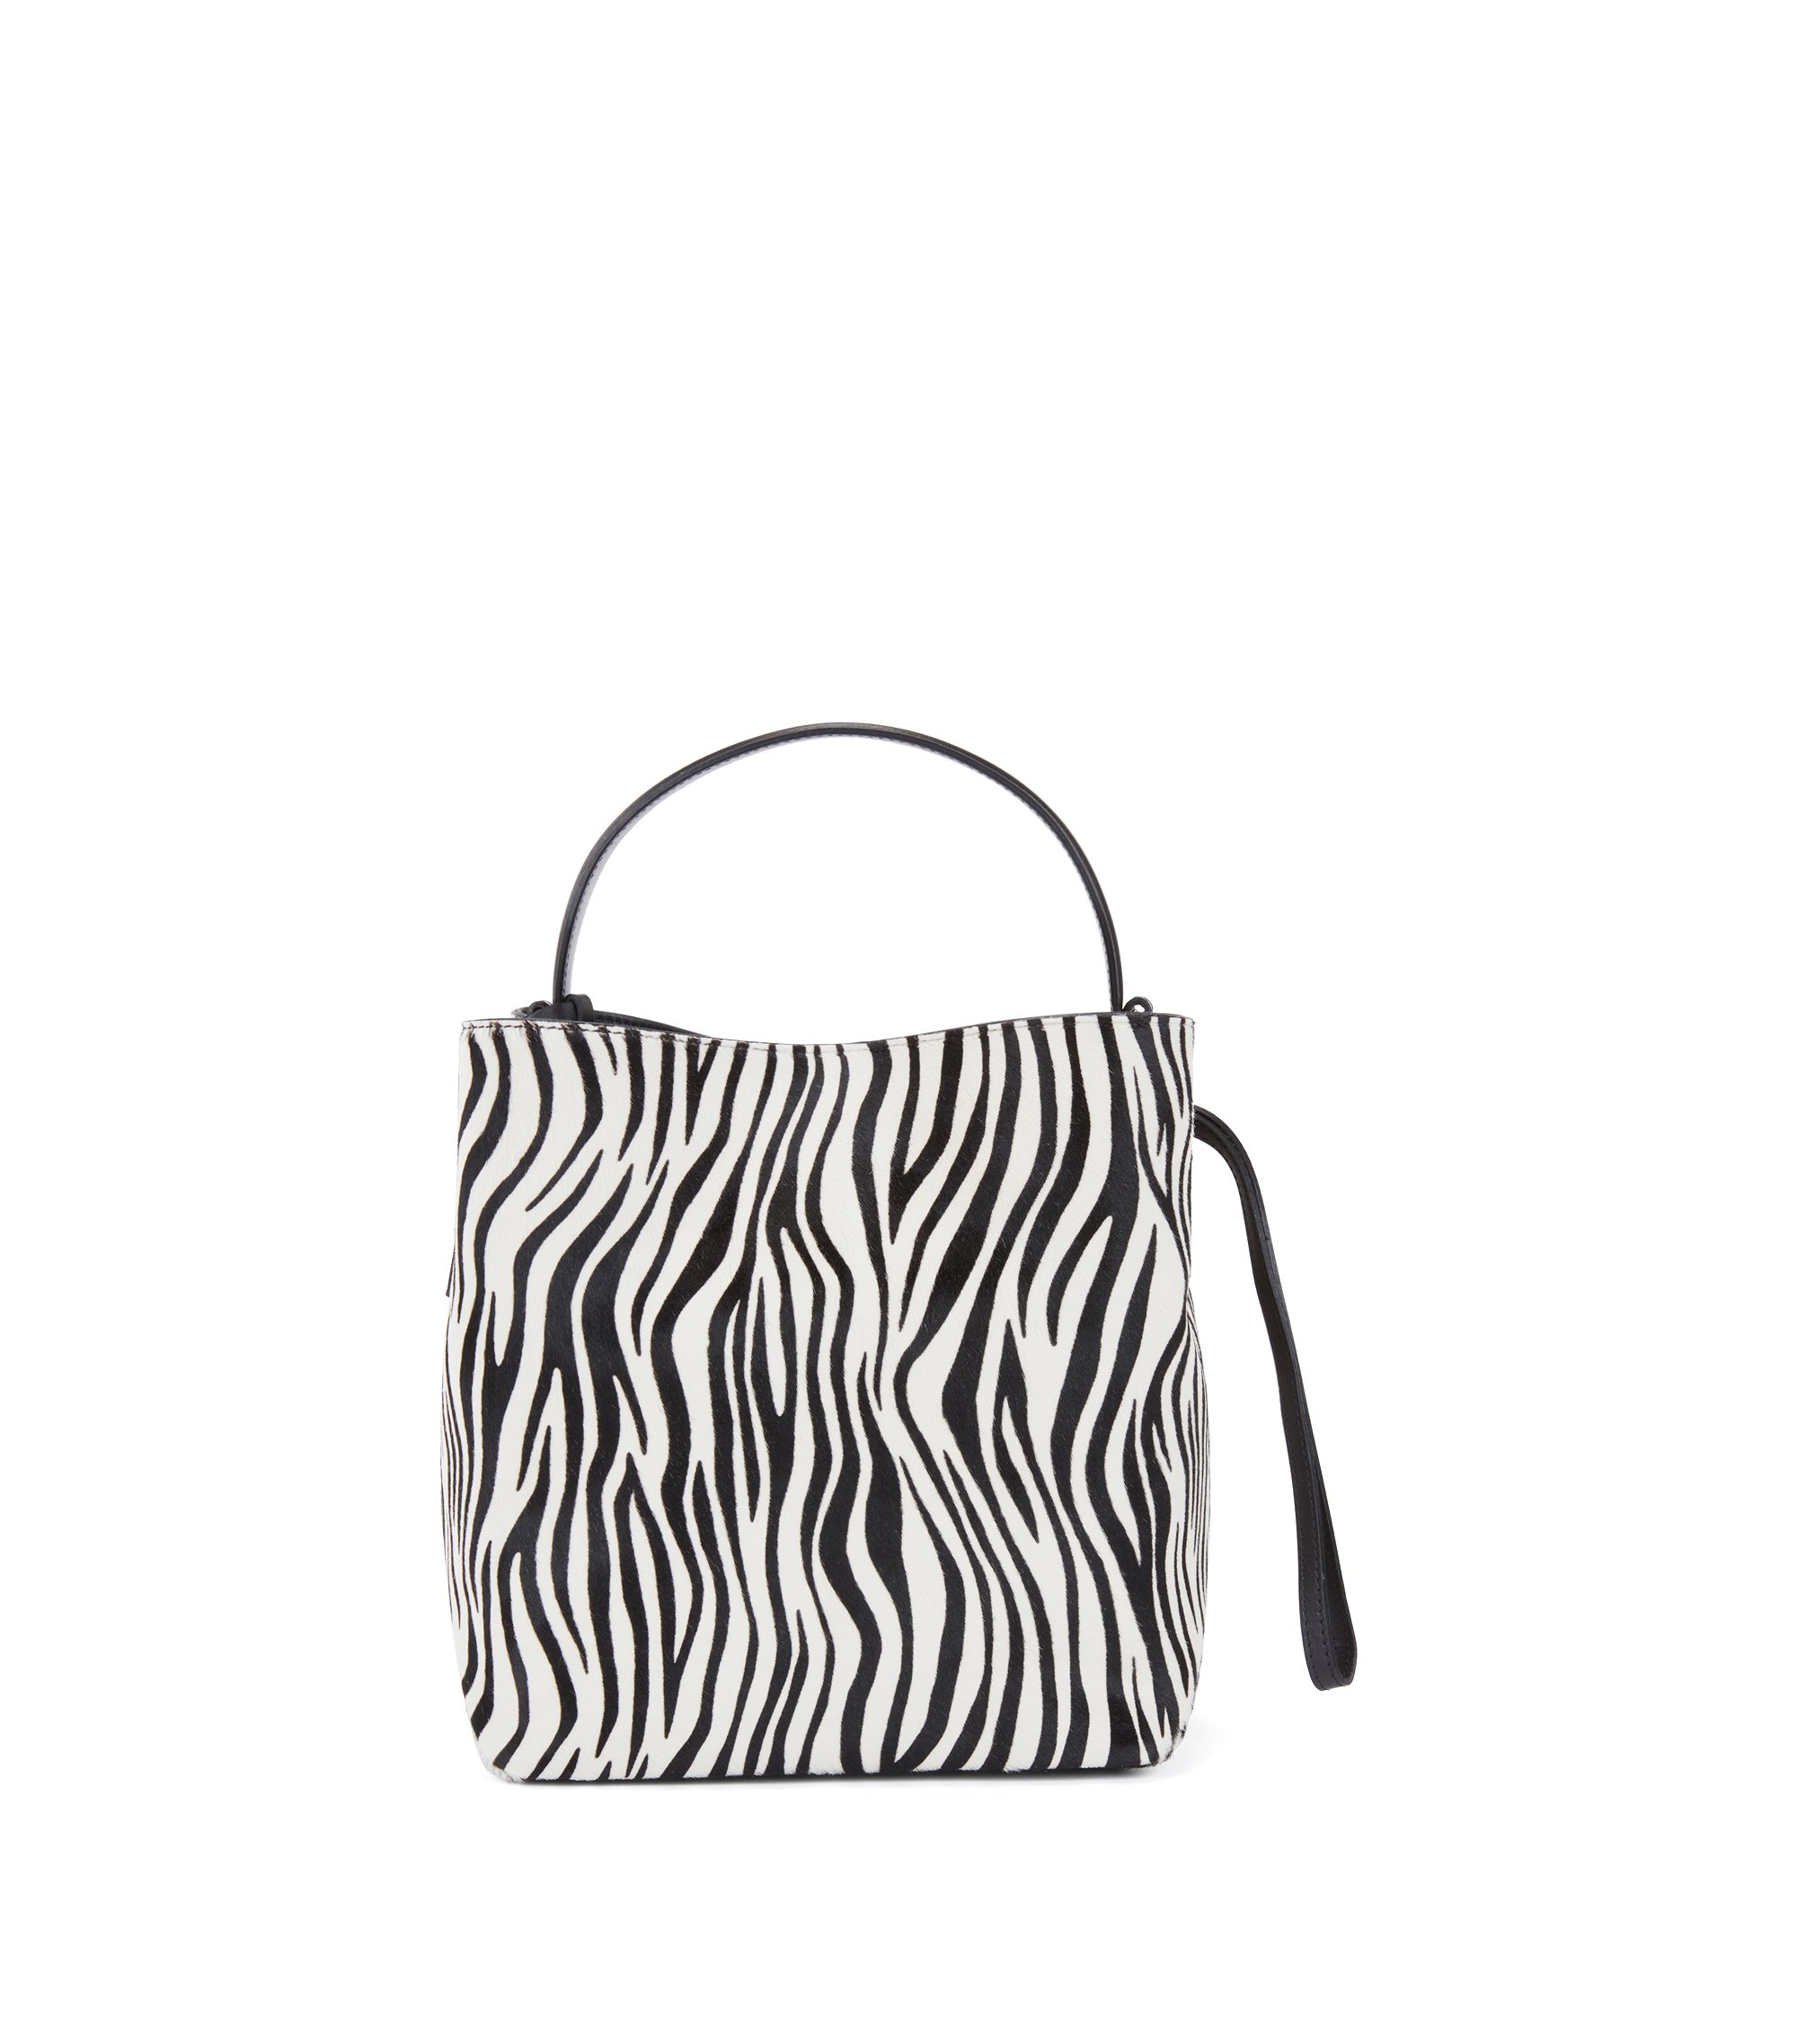 Gallery Collection bucket bag in zebra-print calf fur, Black